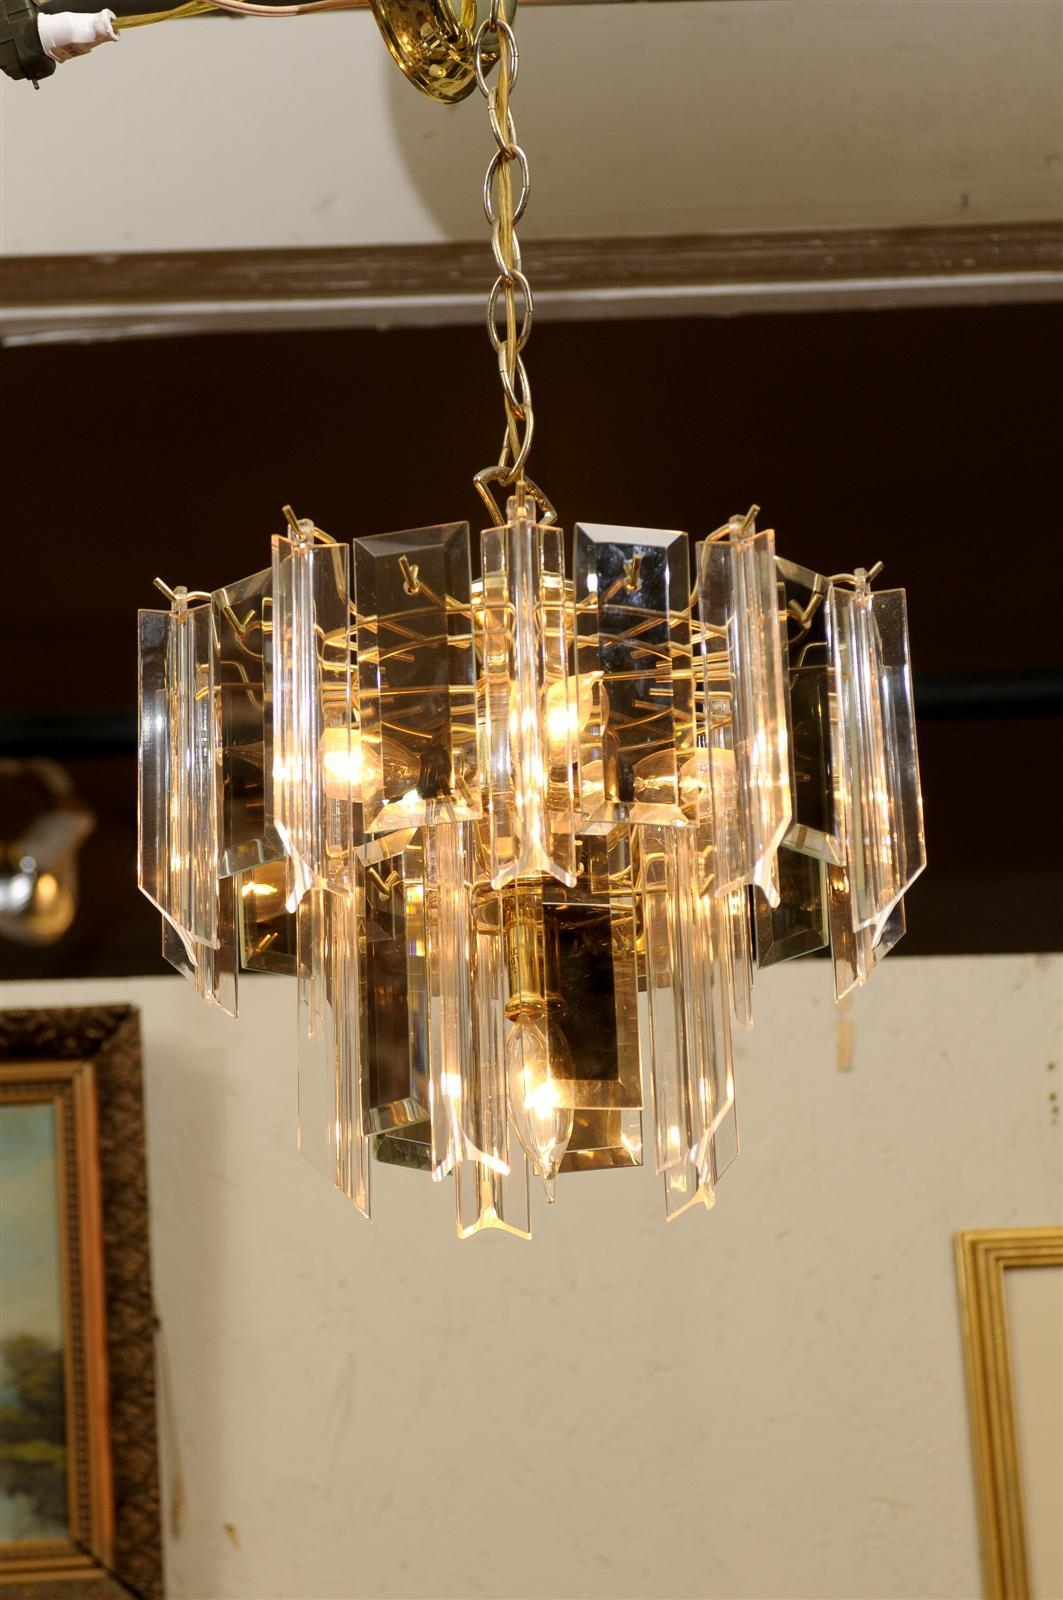 Vintage Waterfall Chandelier Of Brass Smoked Glass And Lucite At Pertaining To Smoked Glass Chandelier (#12 of 12)